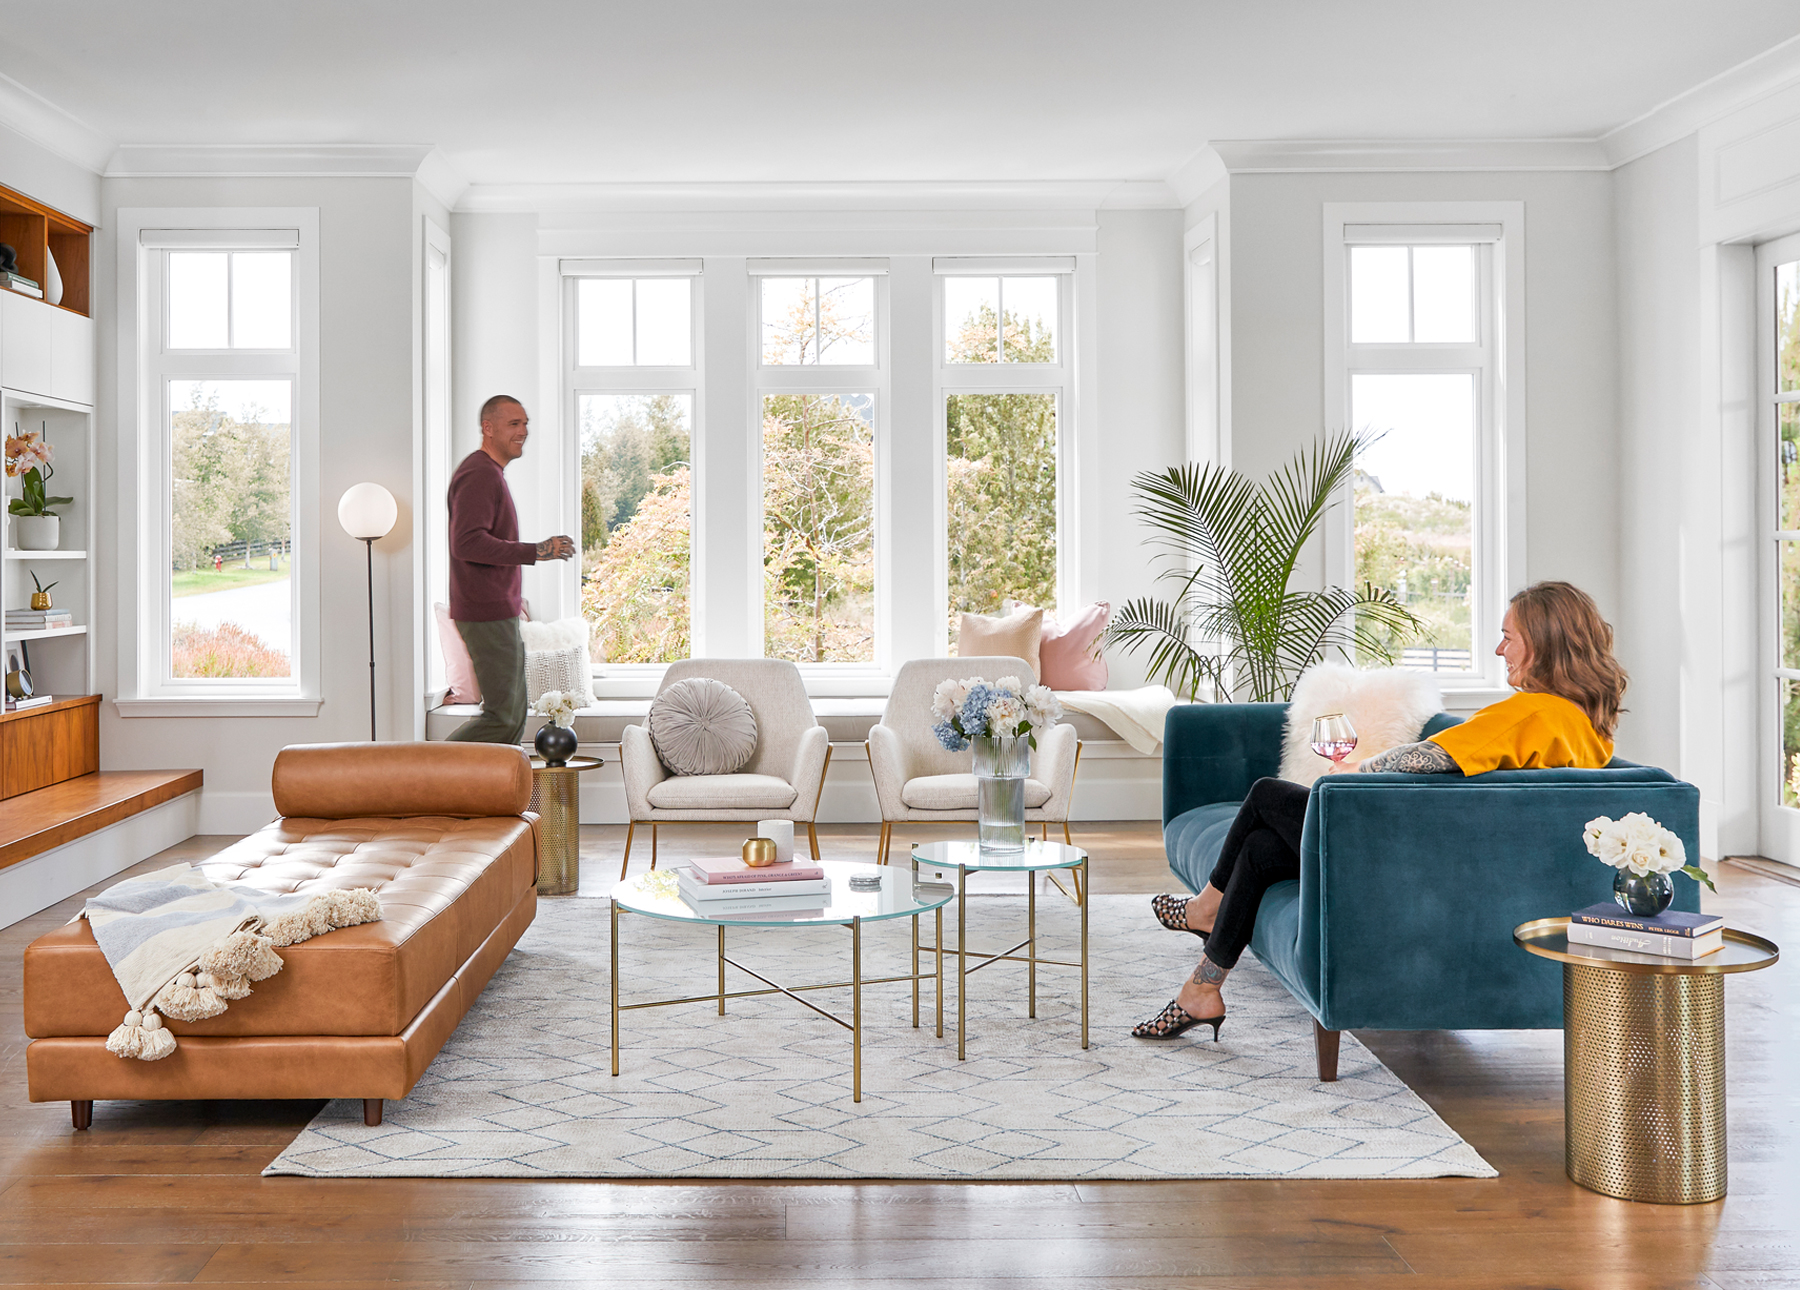 Article furniture is the perfect backdrop for a mod glam get-together